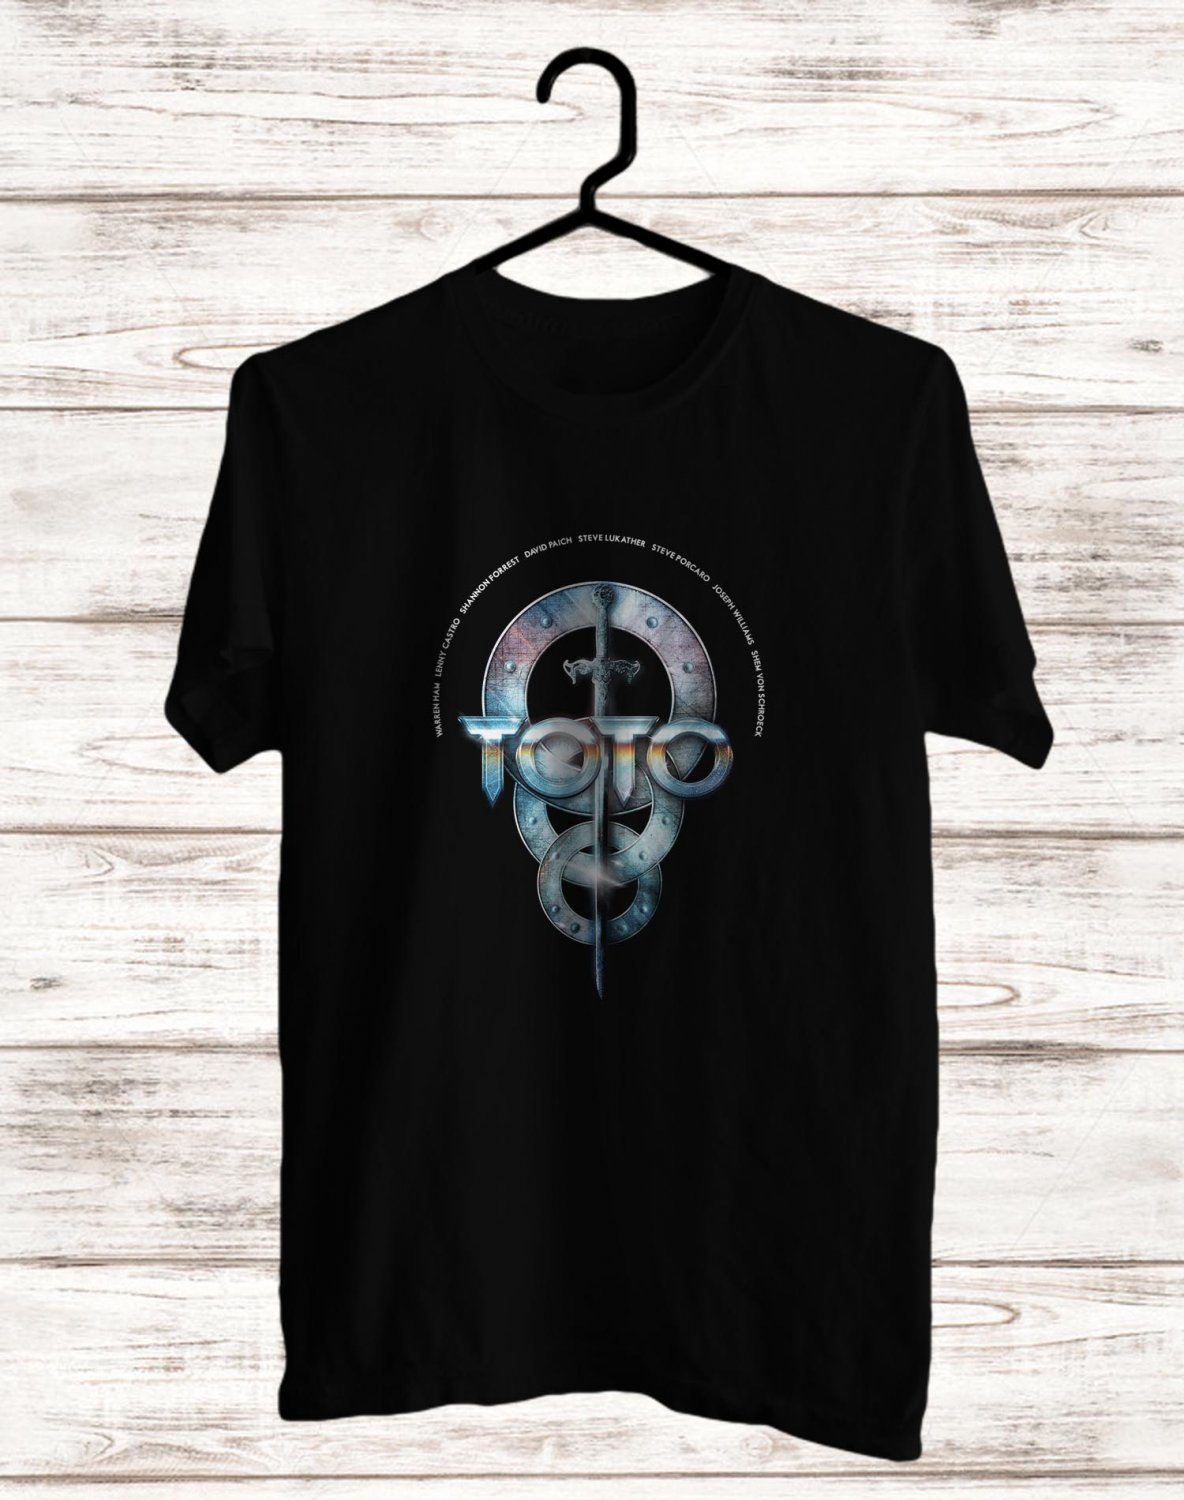 Toto Band Logo 2017 Black Tee's Front Side by Complexart z1